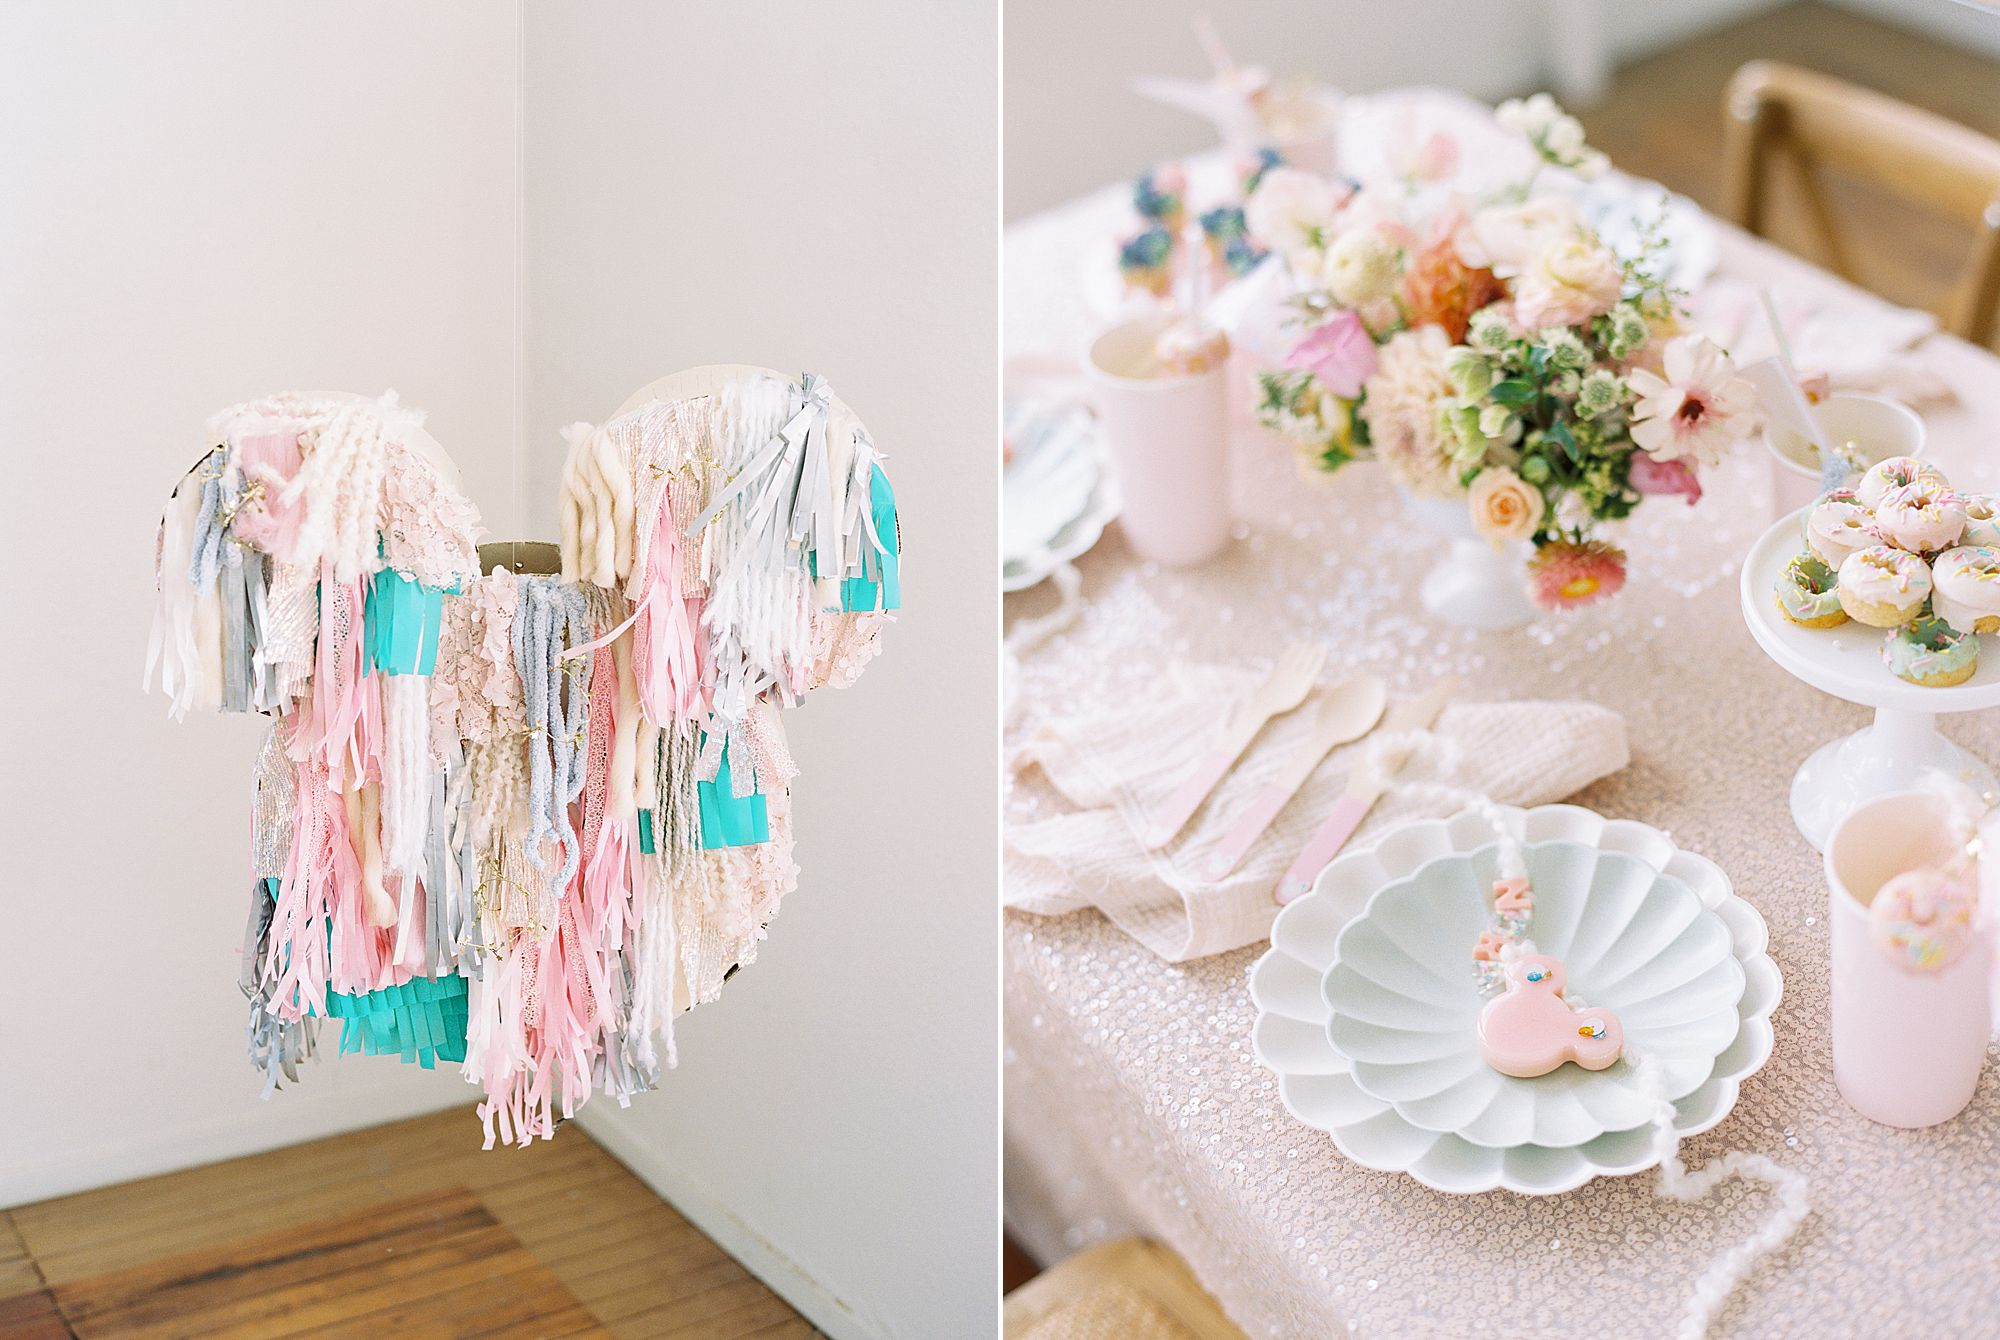 Vintage Disney Birthday Party for Princess Nora's Fourth Birthday - Featured on 100 Layer Cake - Ashley Baumgartner - Parker Grace Events_0026.jpg